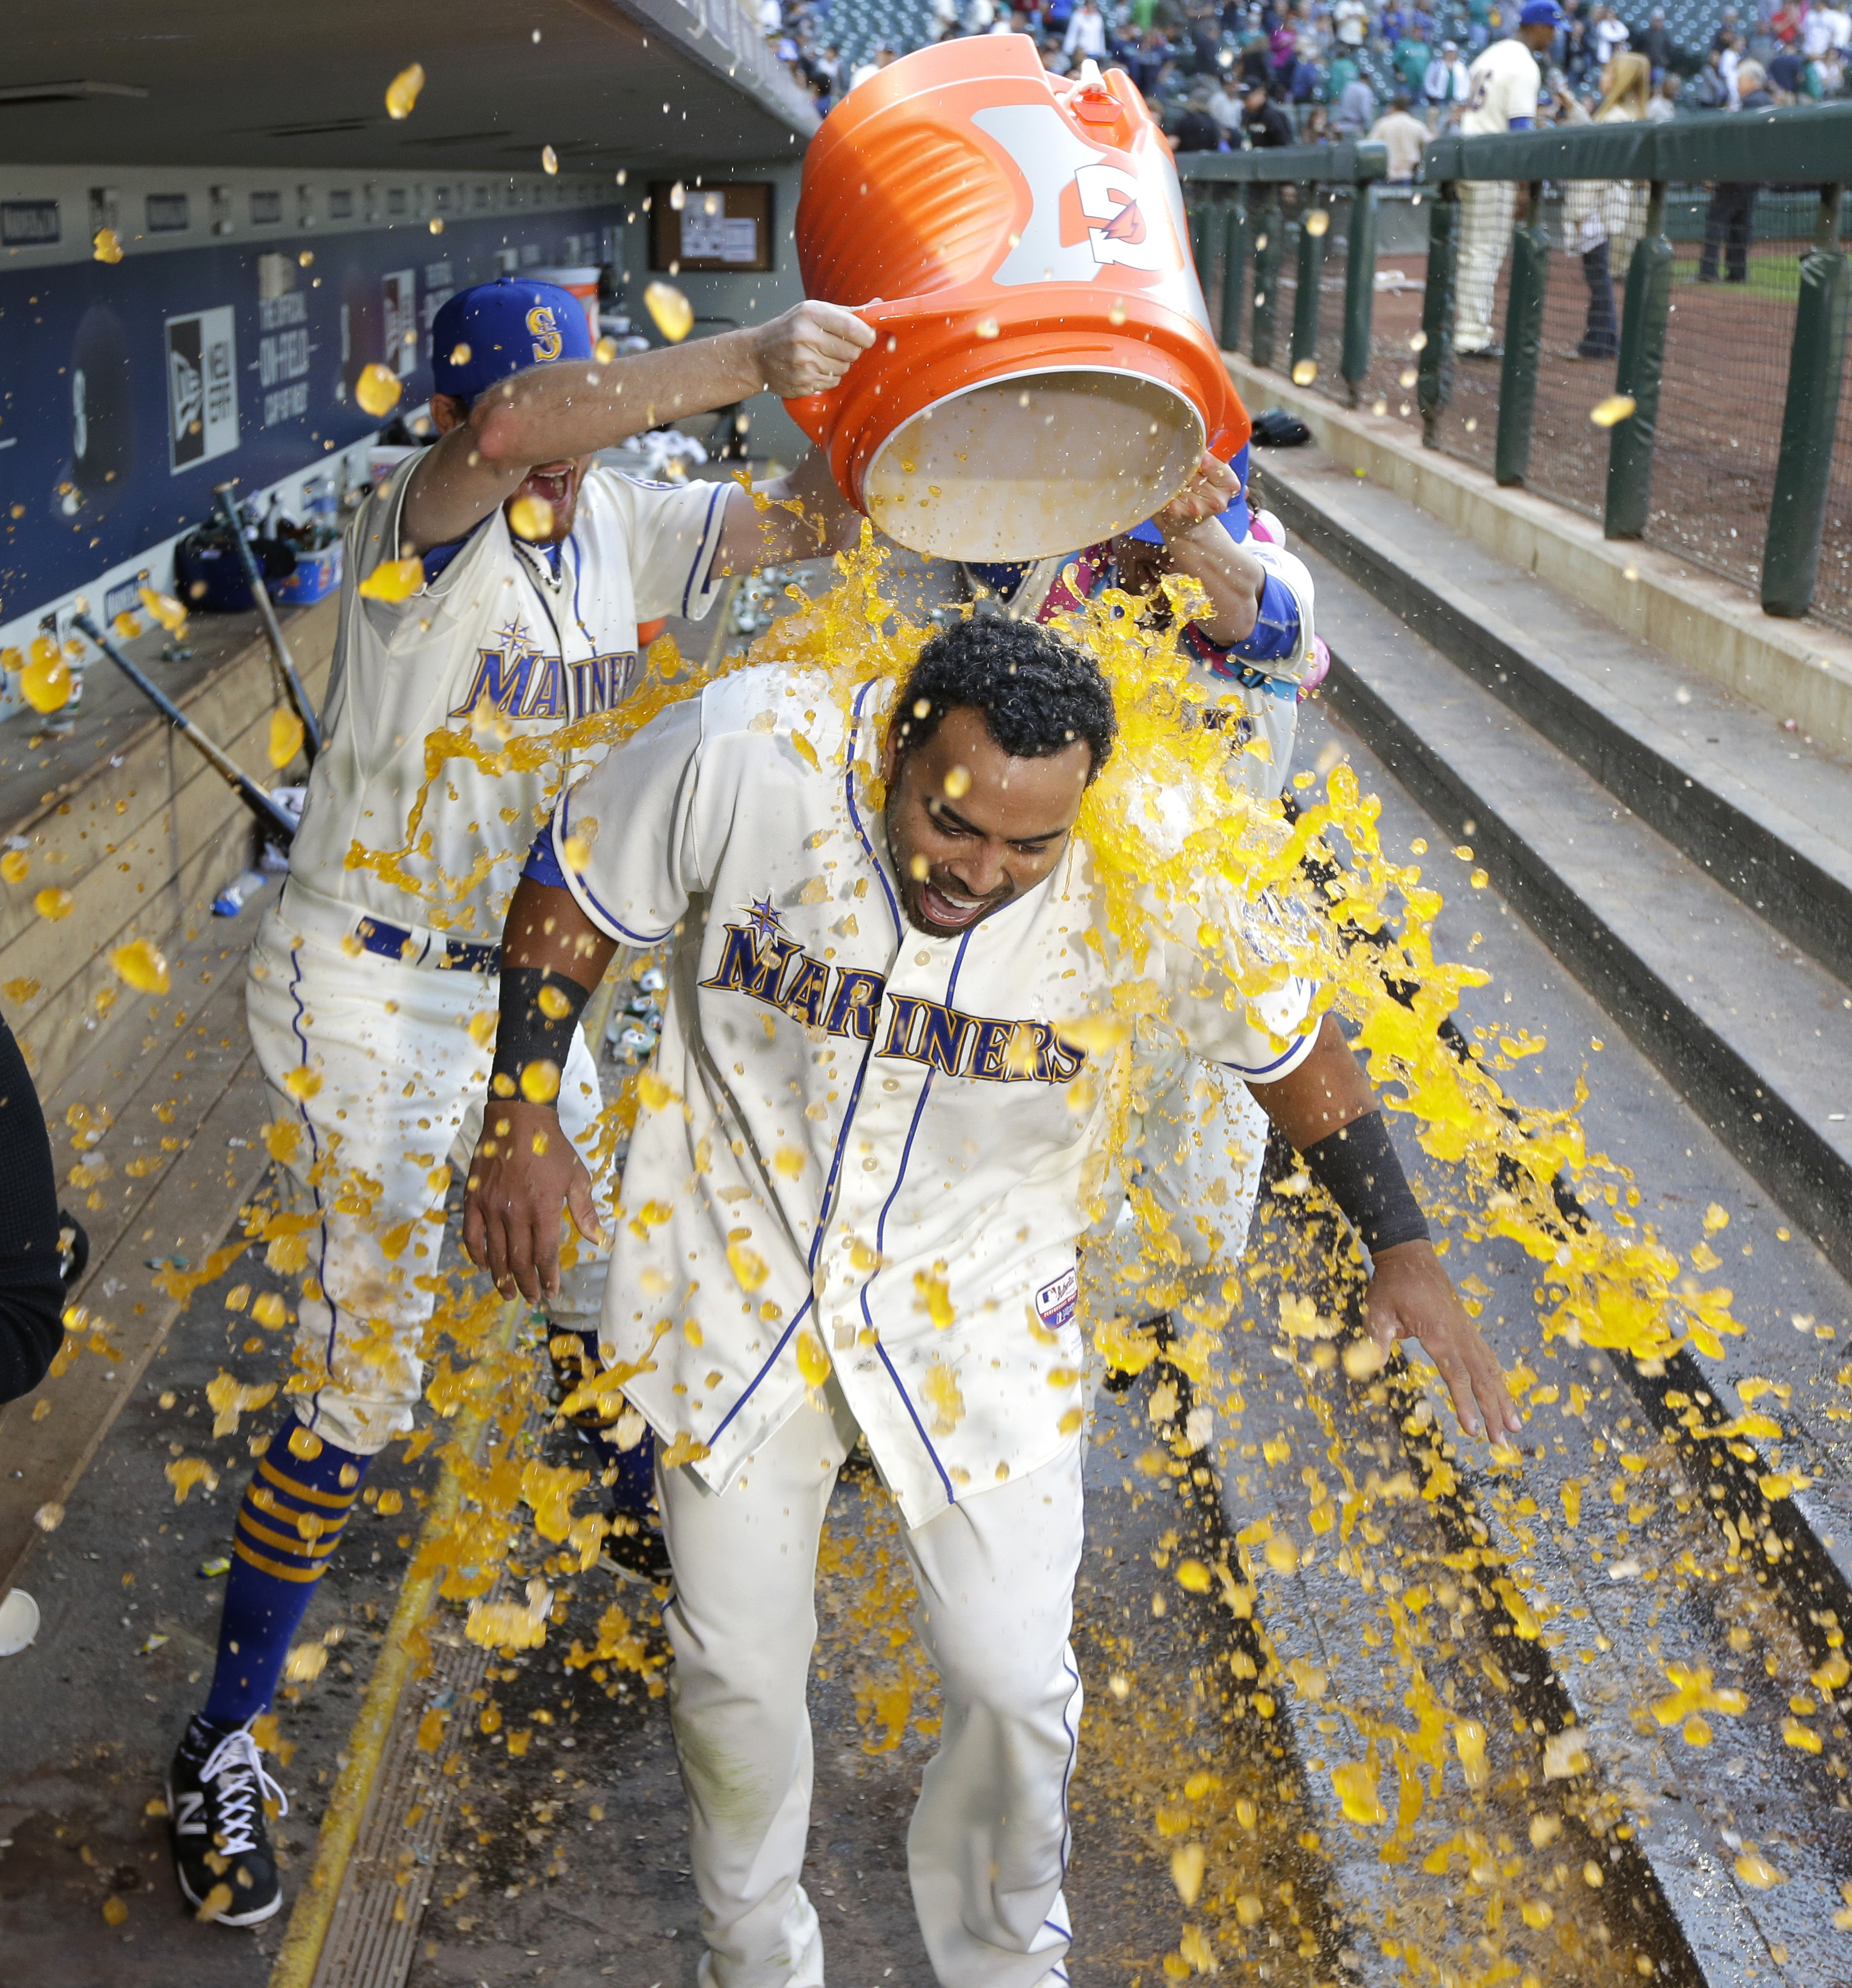 Seattle Mariners' Nelson Cruz, foreground, is doused by Mariners pitchers Charlie Furbush, left, and Danny Farquhar, right, as he takes part in a television interview after hitting a walkoff RBI-single in the ninth inning of a baseball game against the Te